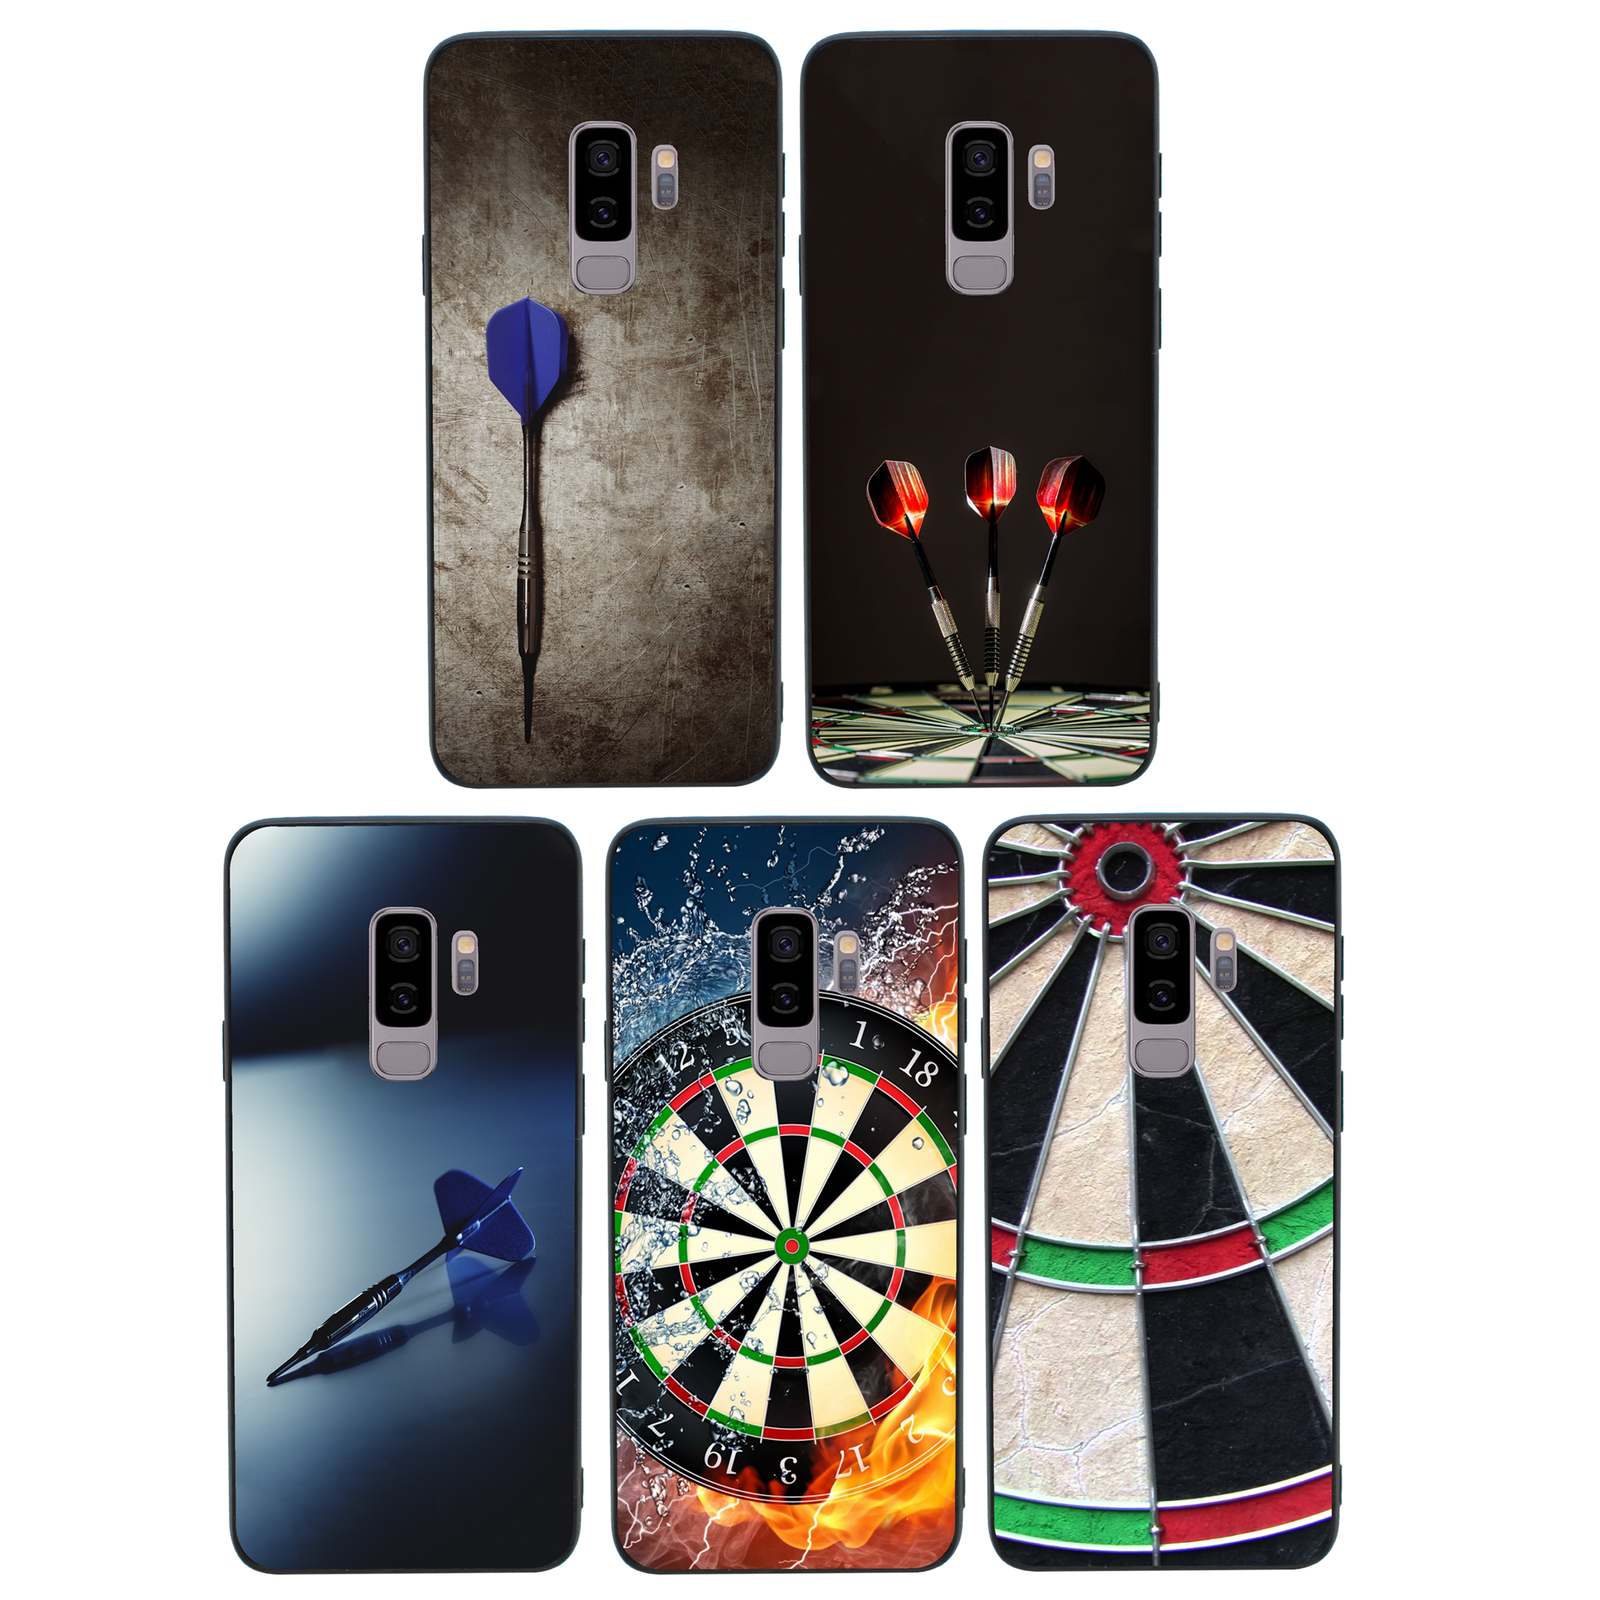 Darts Case Glass Back Bumper Cover for Samsung Galaxy S8 S9 S10 EDGE PLUS